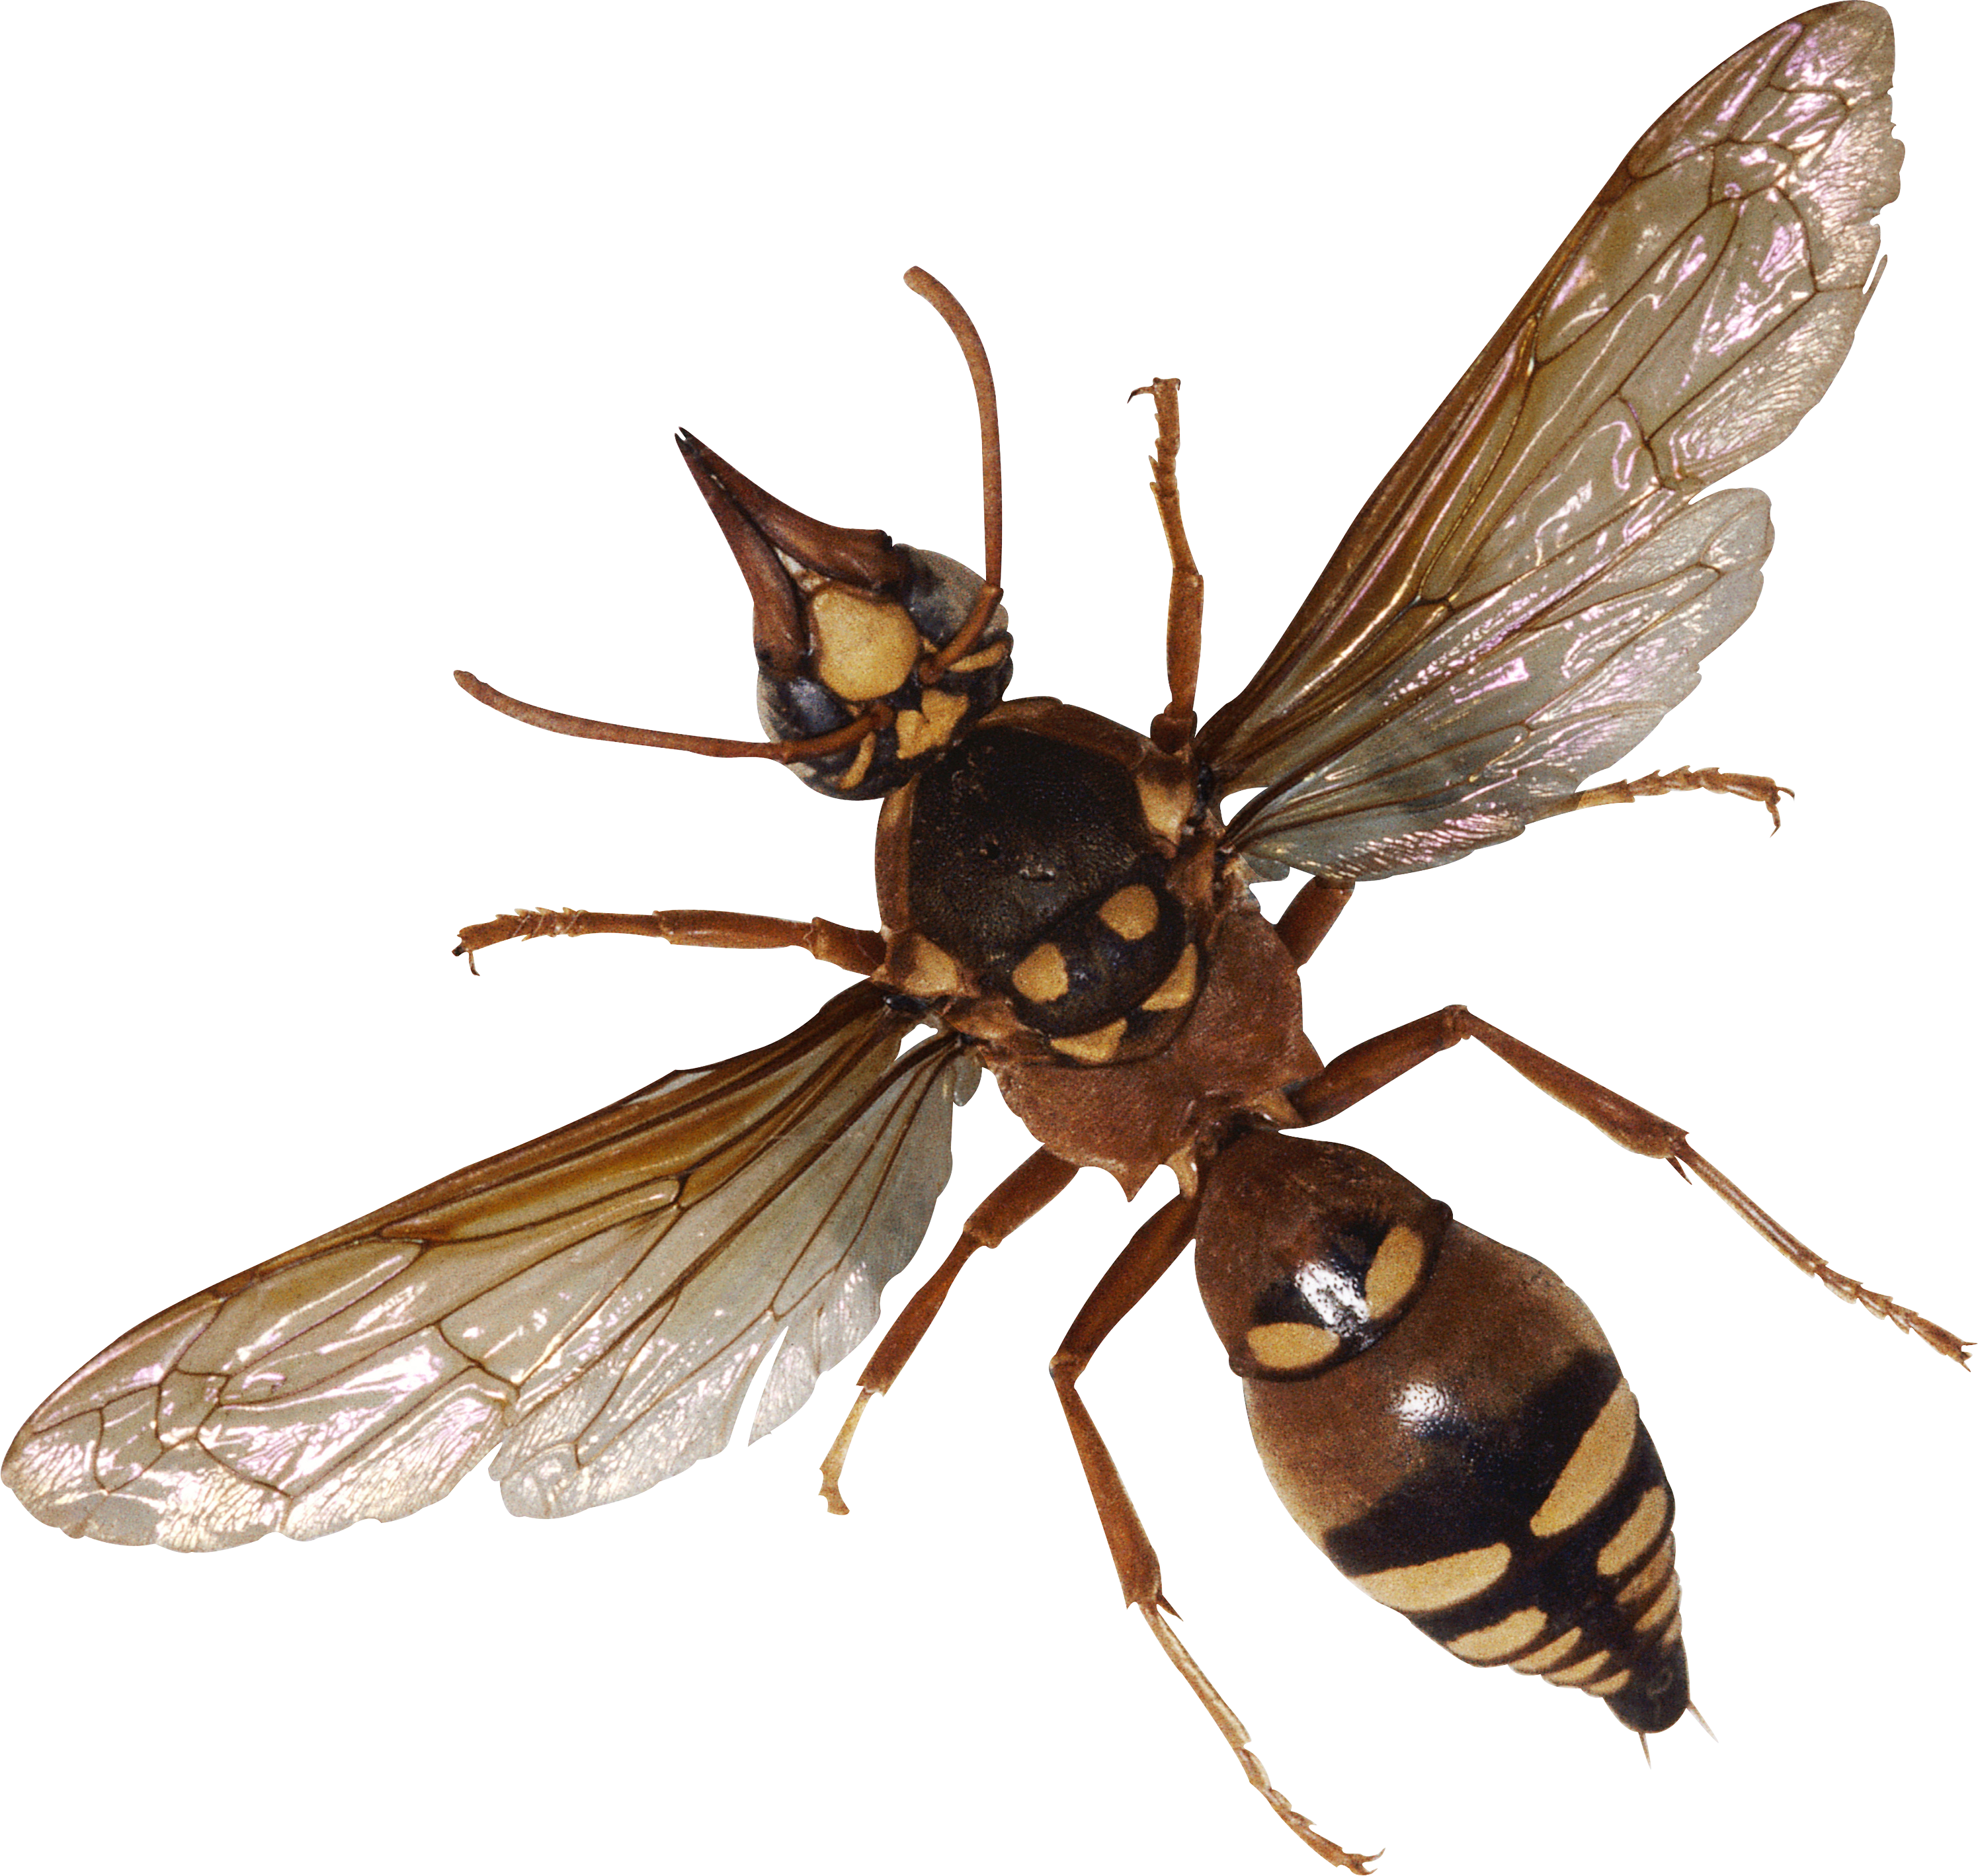 Bug Png Image - Insects And Bugs, Transparent background PNG HD thumbnail